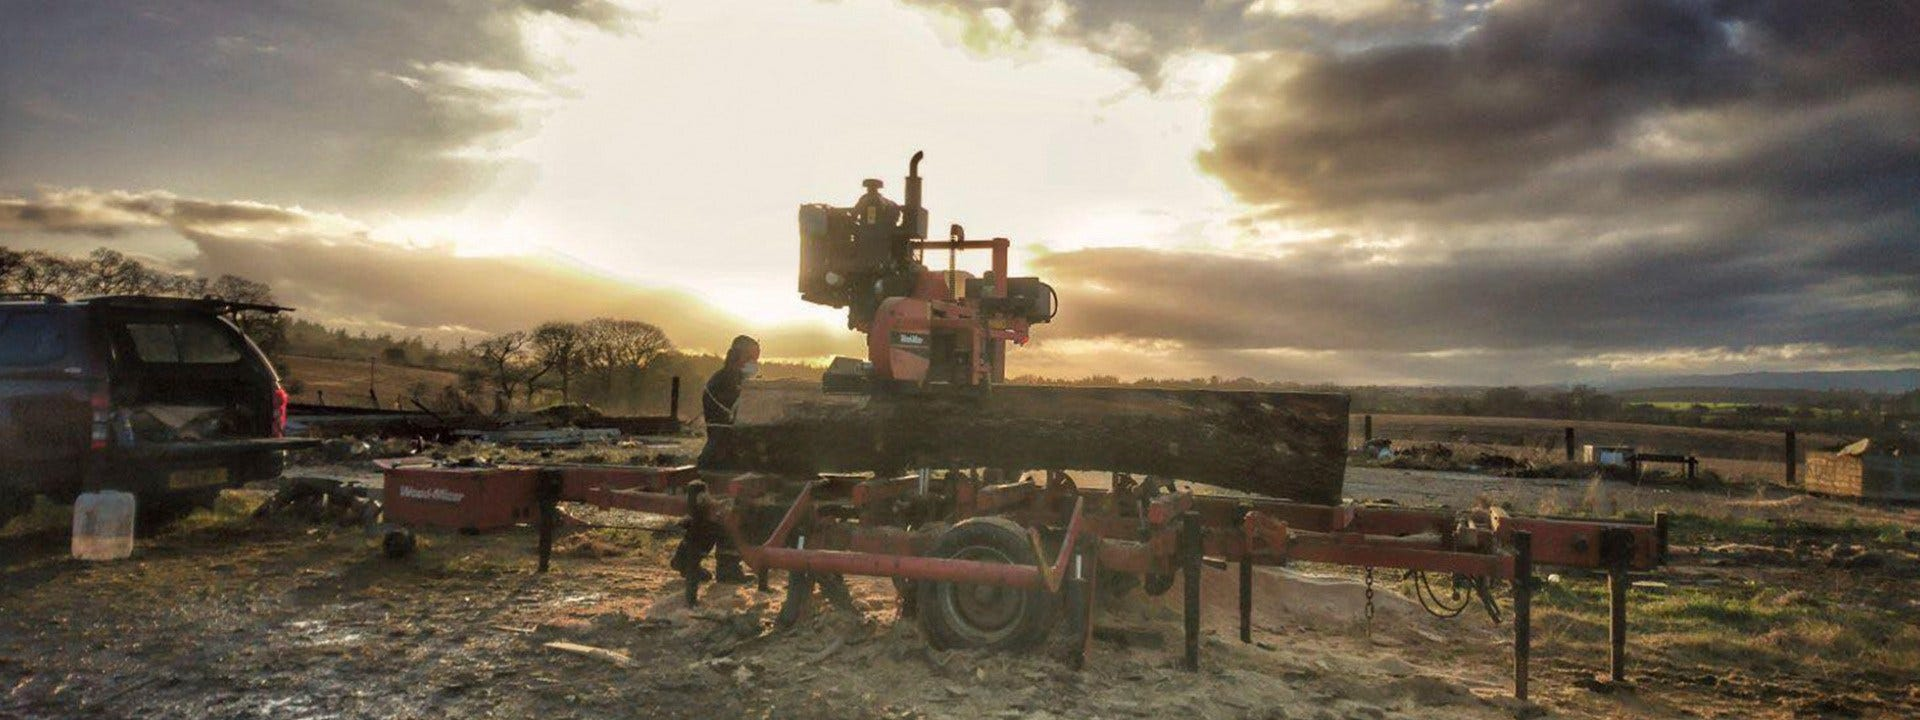 Mobile Sawmilling with Wood-Mizer LT40 sawmill in Scotland